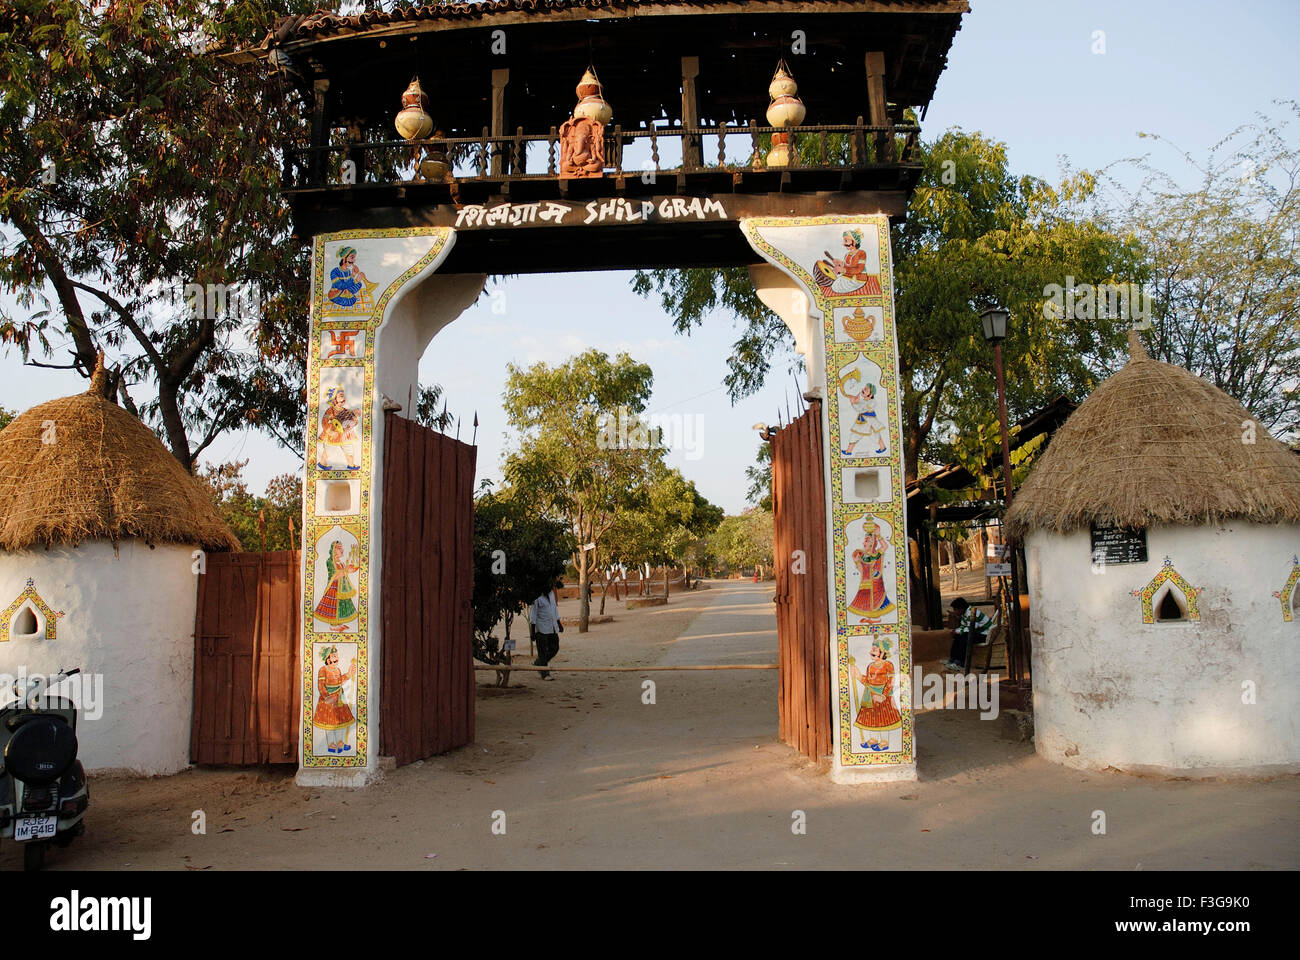 Shilpgram rural arts and crafts complex entrance gate Udaipur Rajasthan India - ngs 141094 - Stock Image